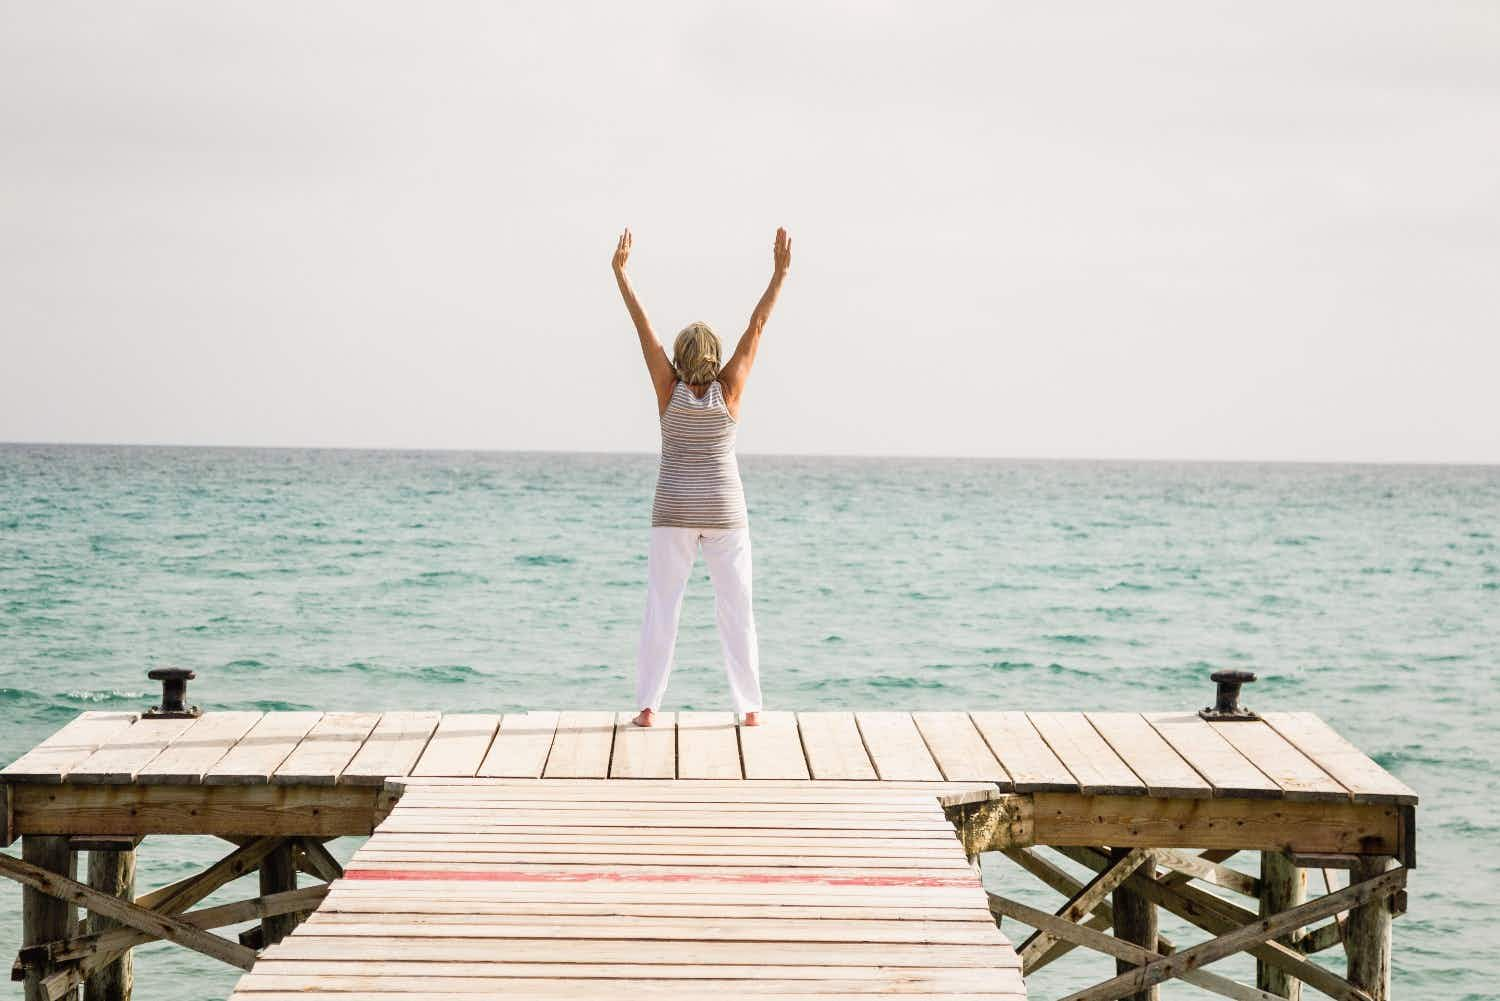 Women over 50 are leading the boom in solo travel in the UK